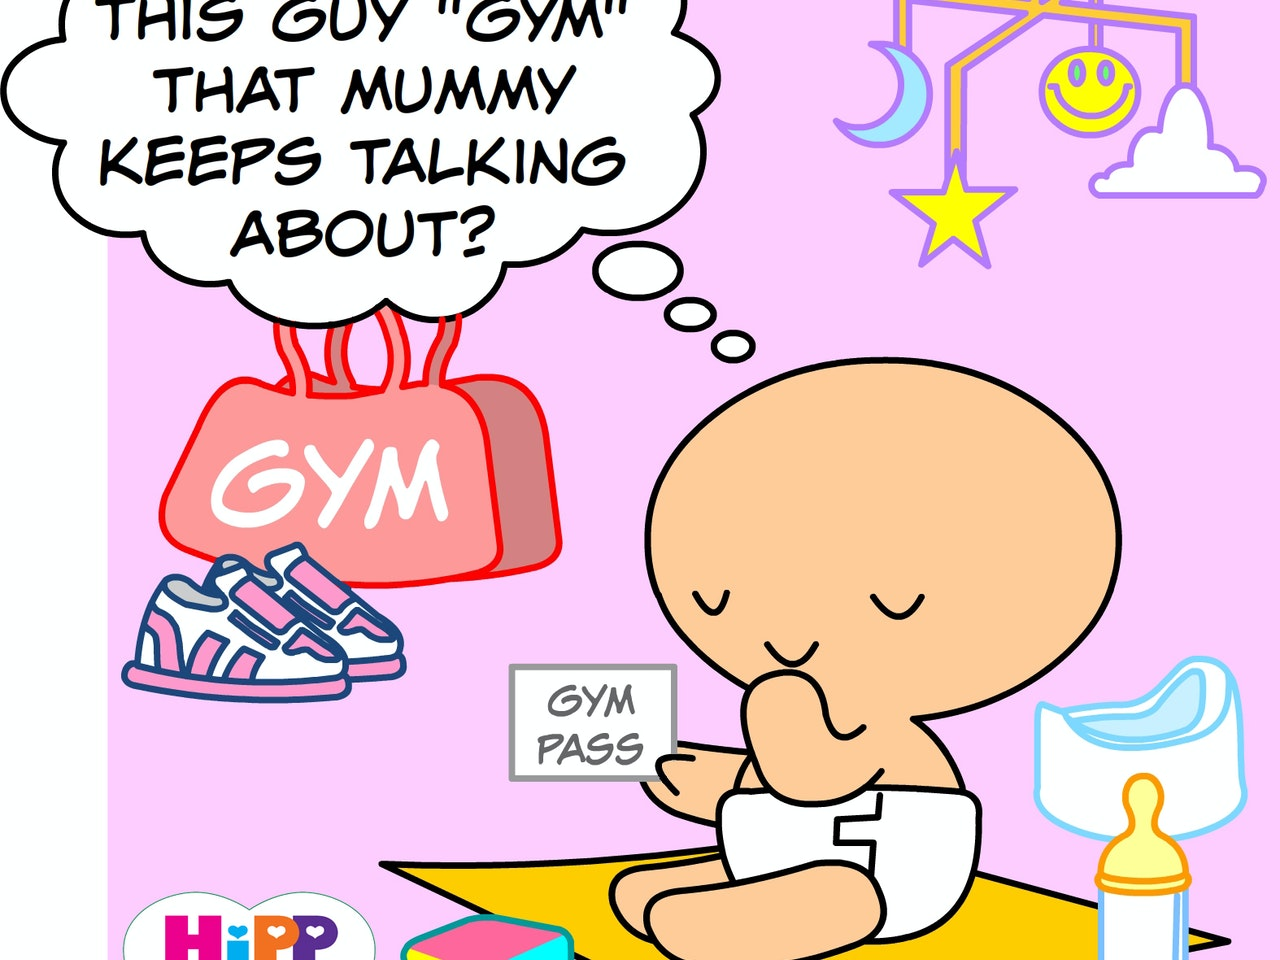 excercise gym nappy childrens illustration animation funny  humorous comical colourful graphic novel comic strip cartoon comic book  baby care child care mother healthy eating cute sweet loveable funny  adorable